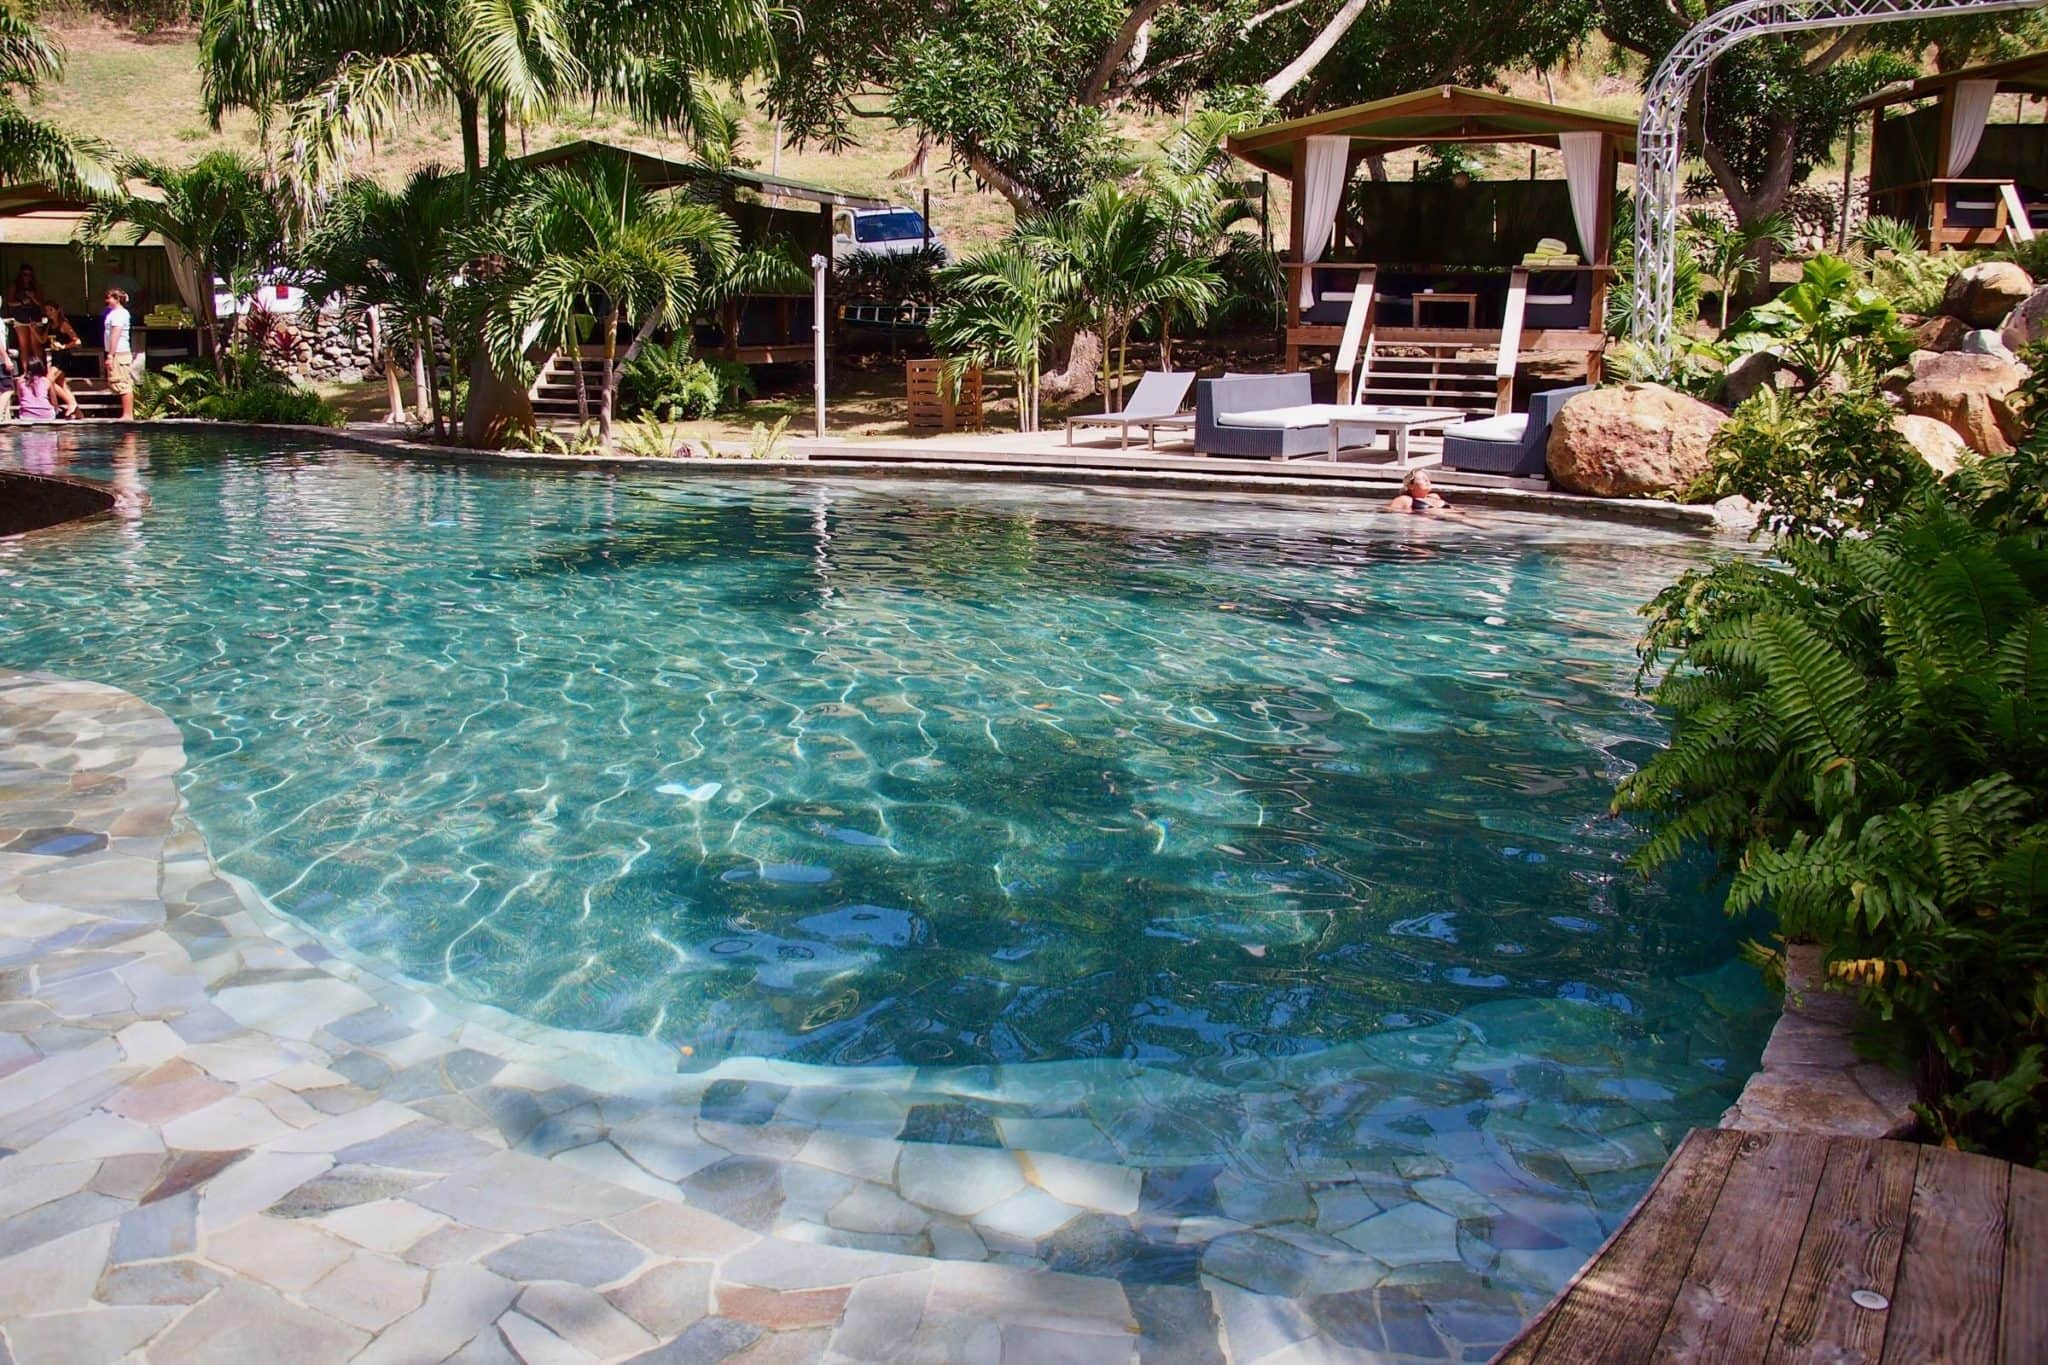 On-Site St. Martin: Party and Play in Privacy at Loterie Farm